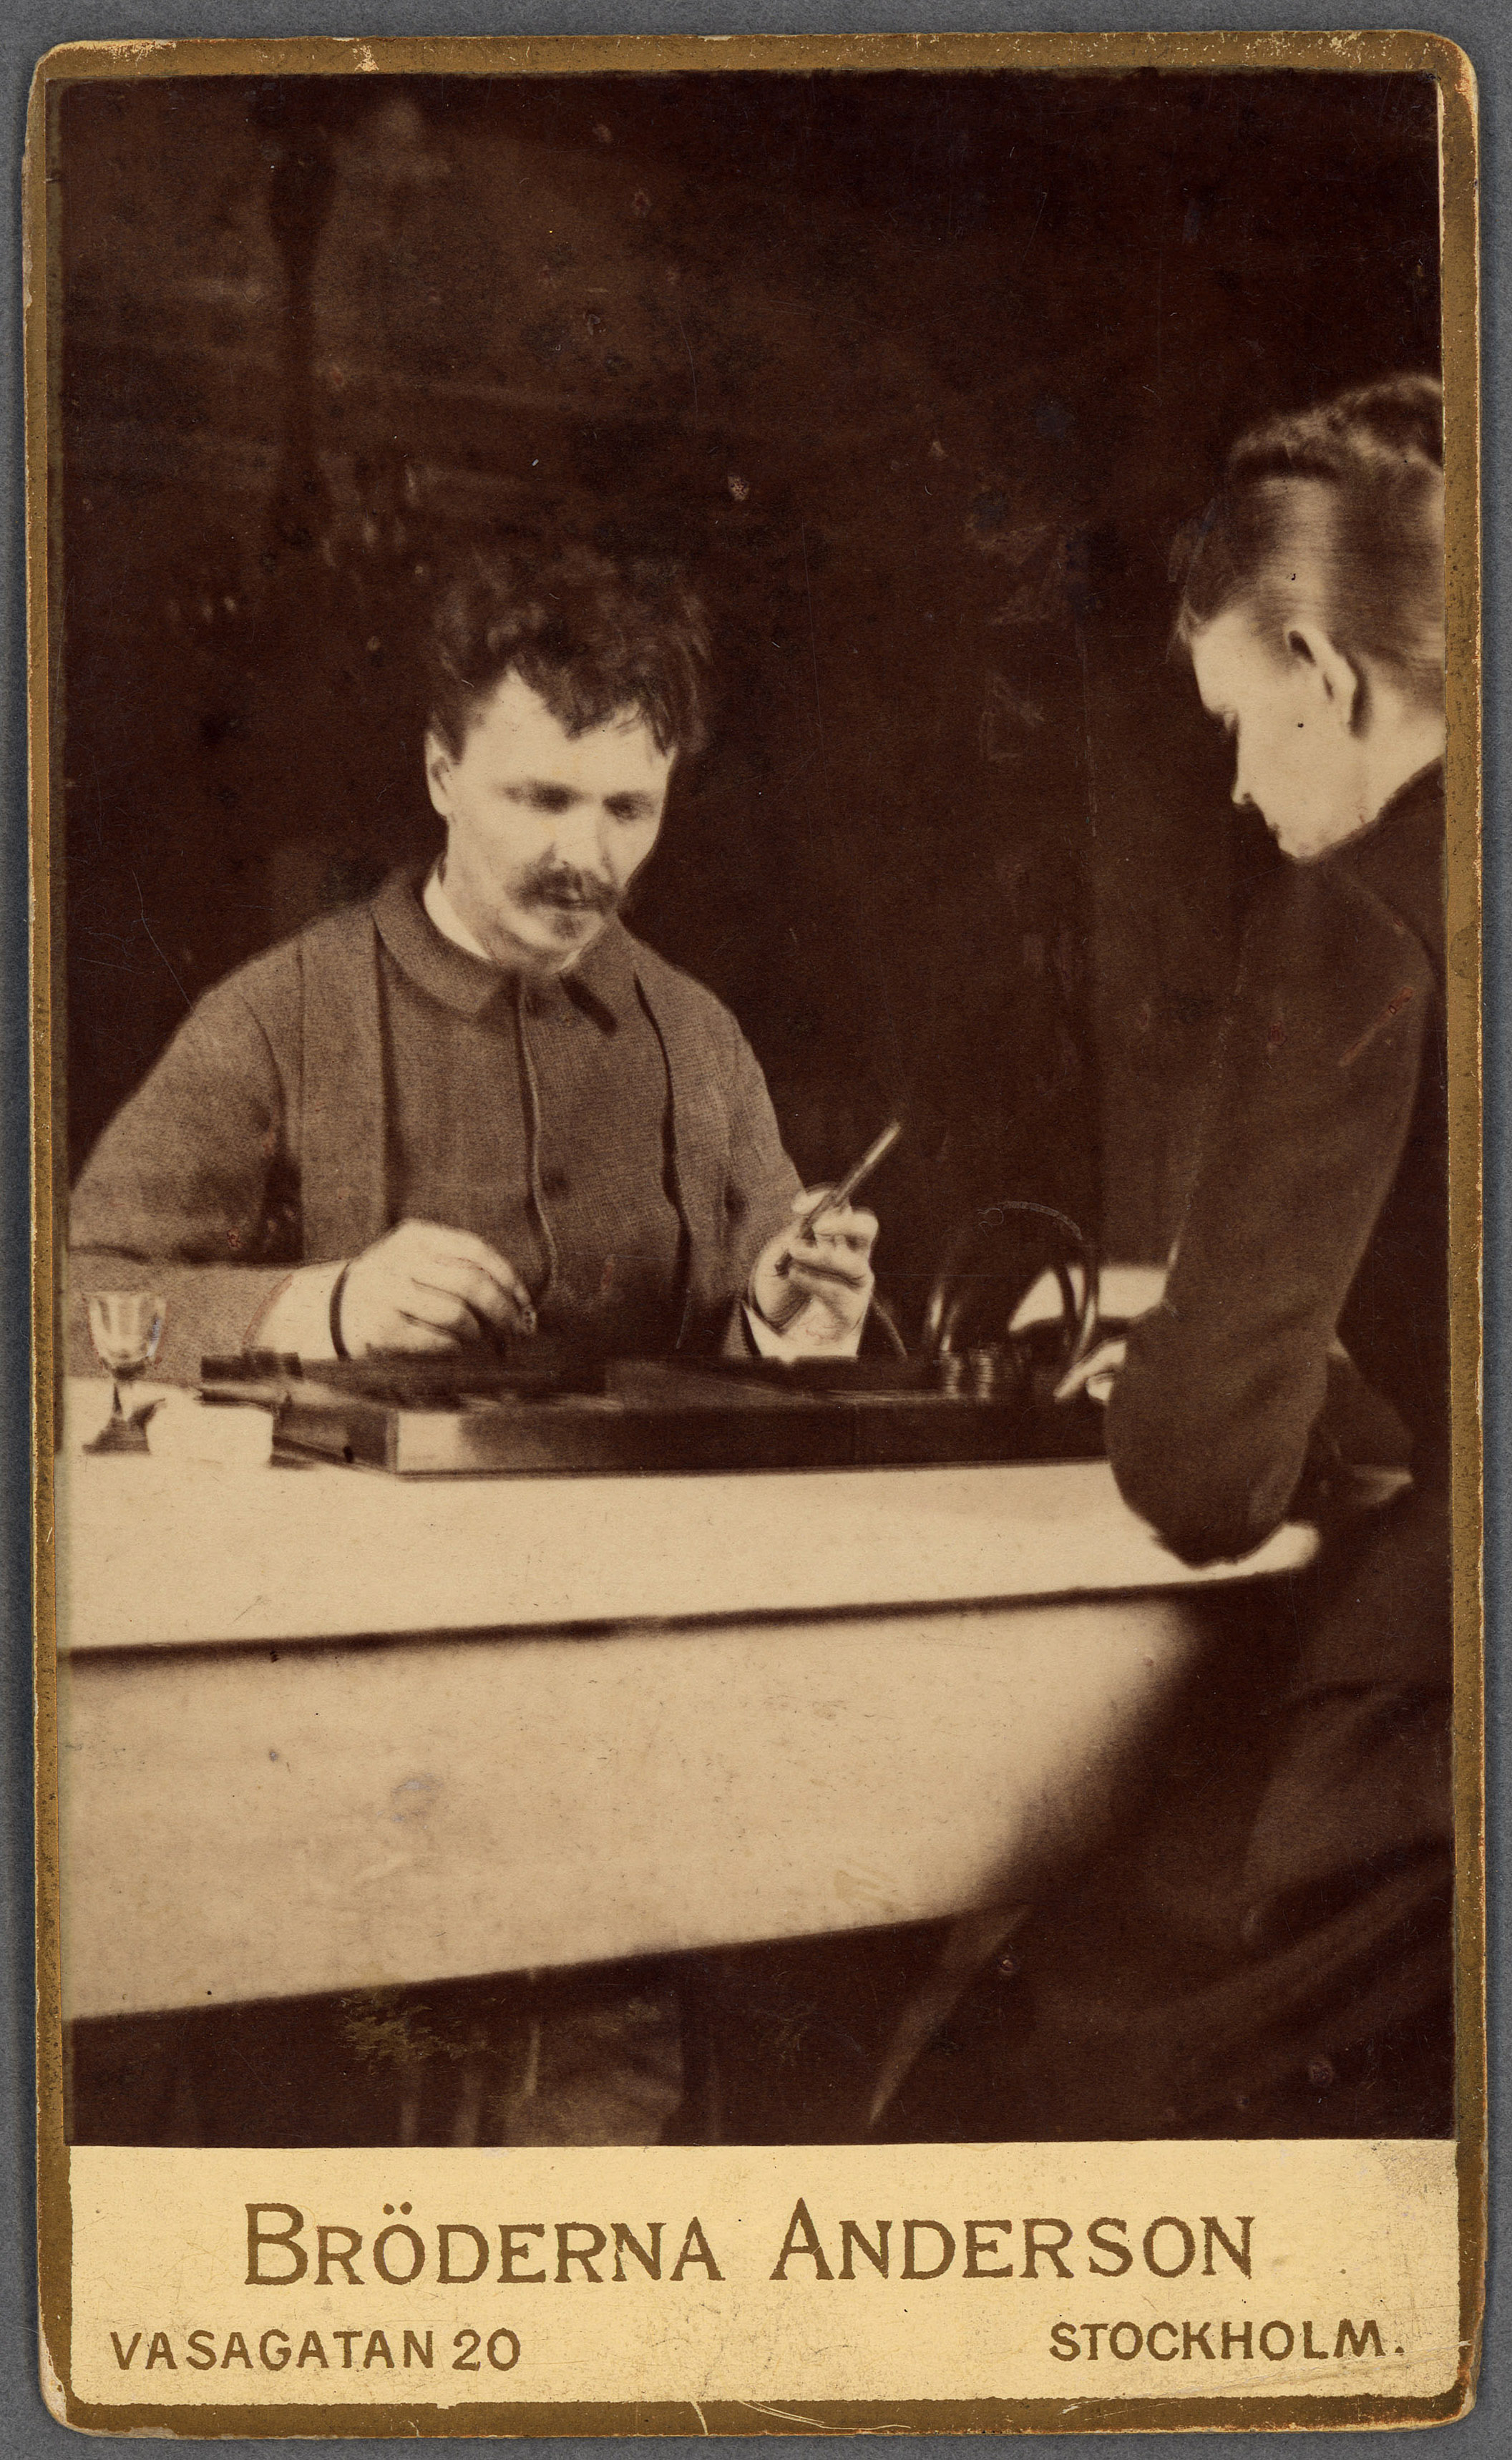 Strindberg and von Essen working on a new play in Stockholm